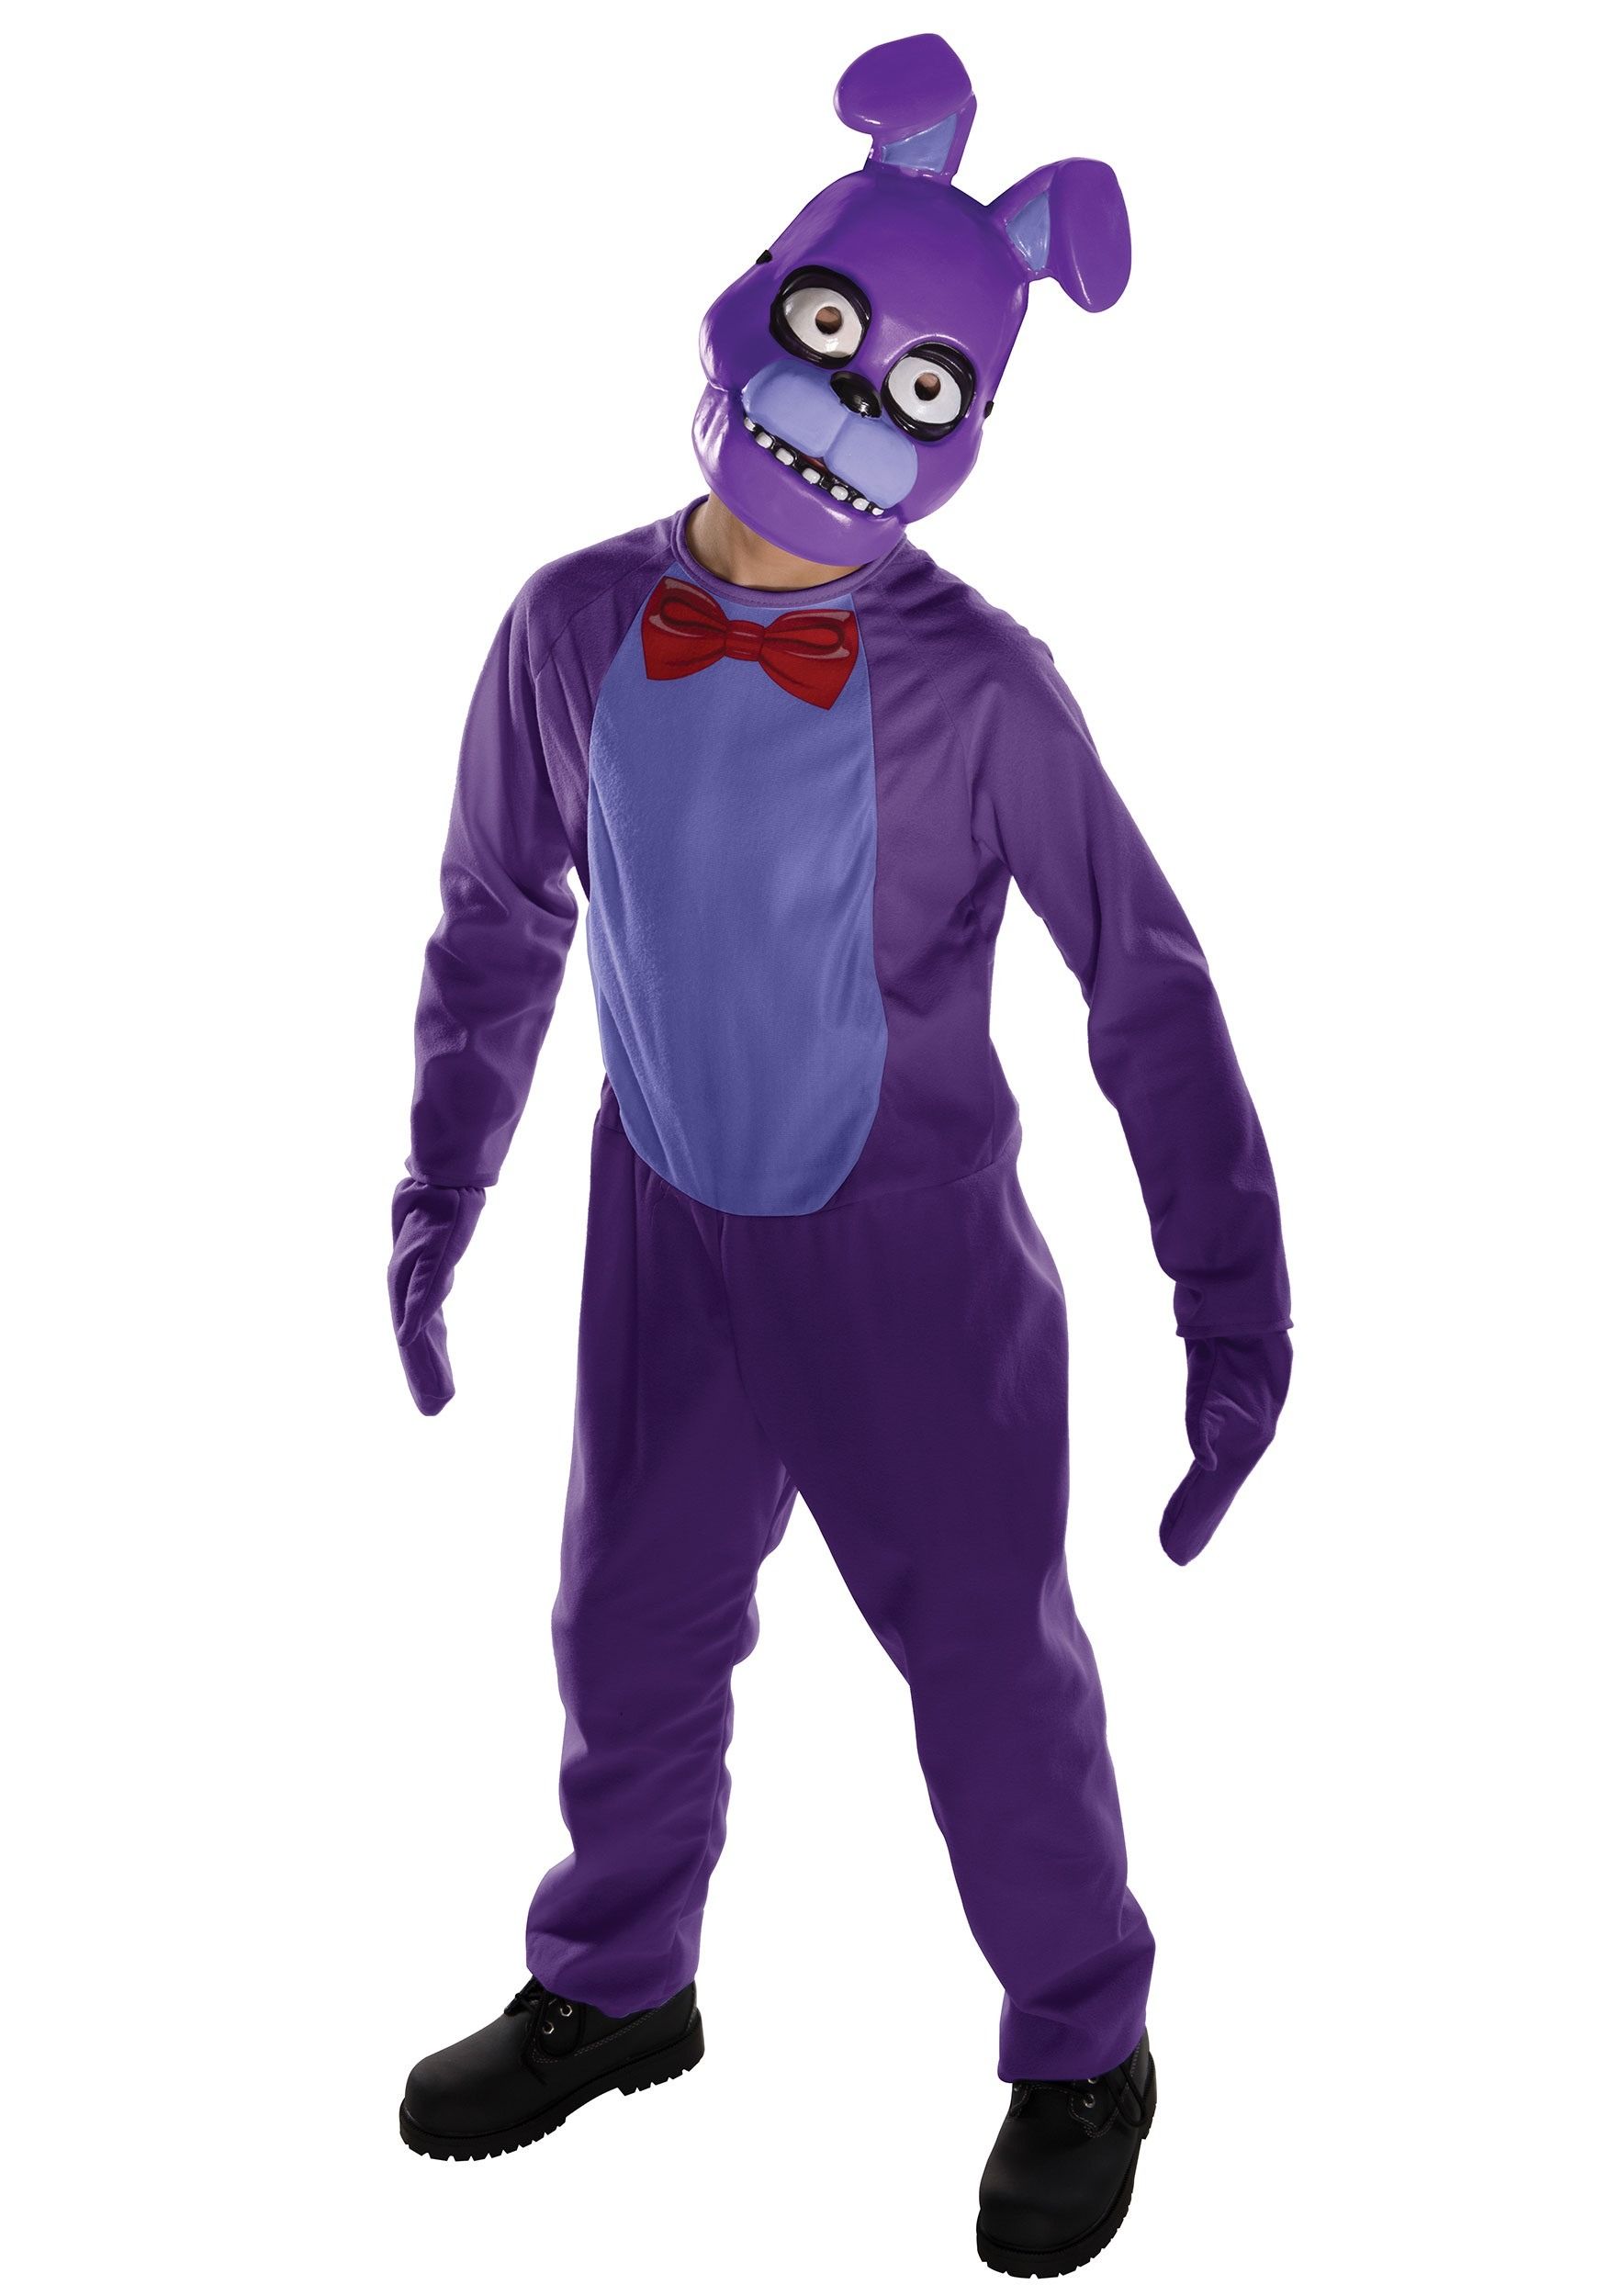 Fnaf bonnie costume for sale - Fnaf Bonnie Costume For Sale 15